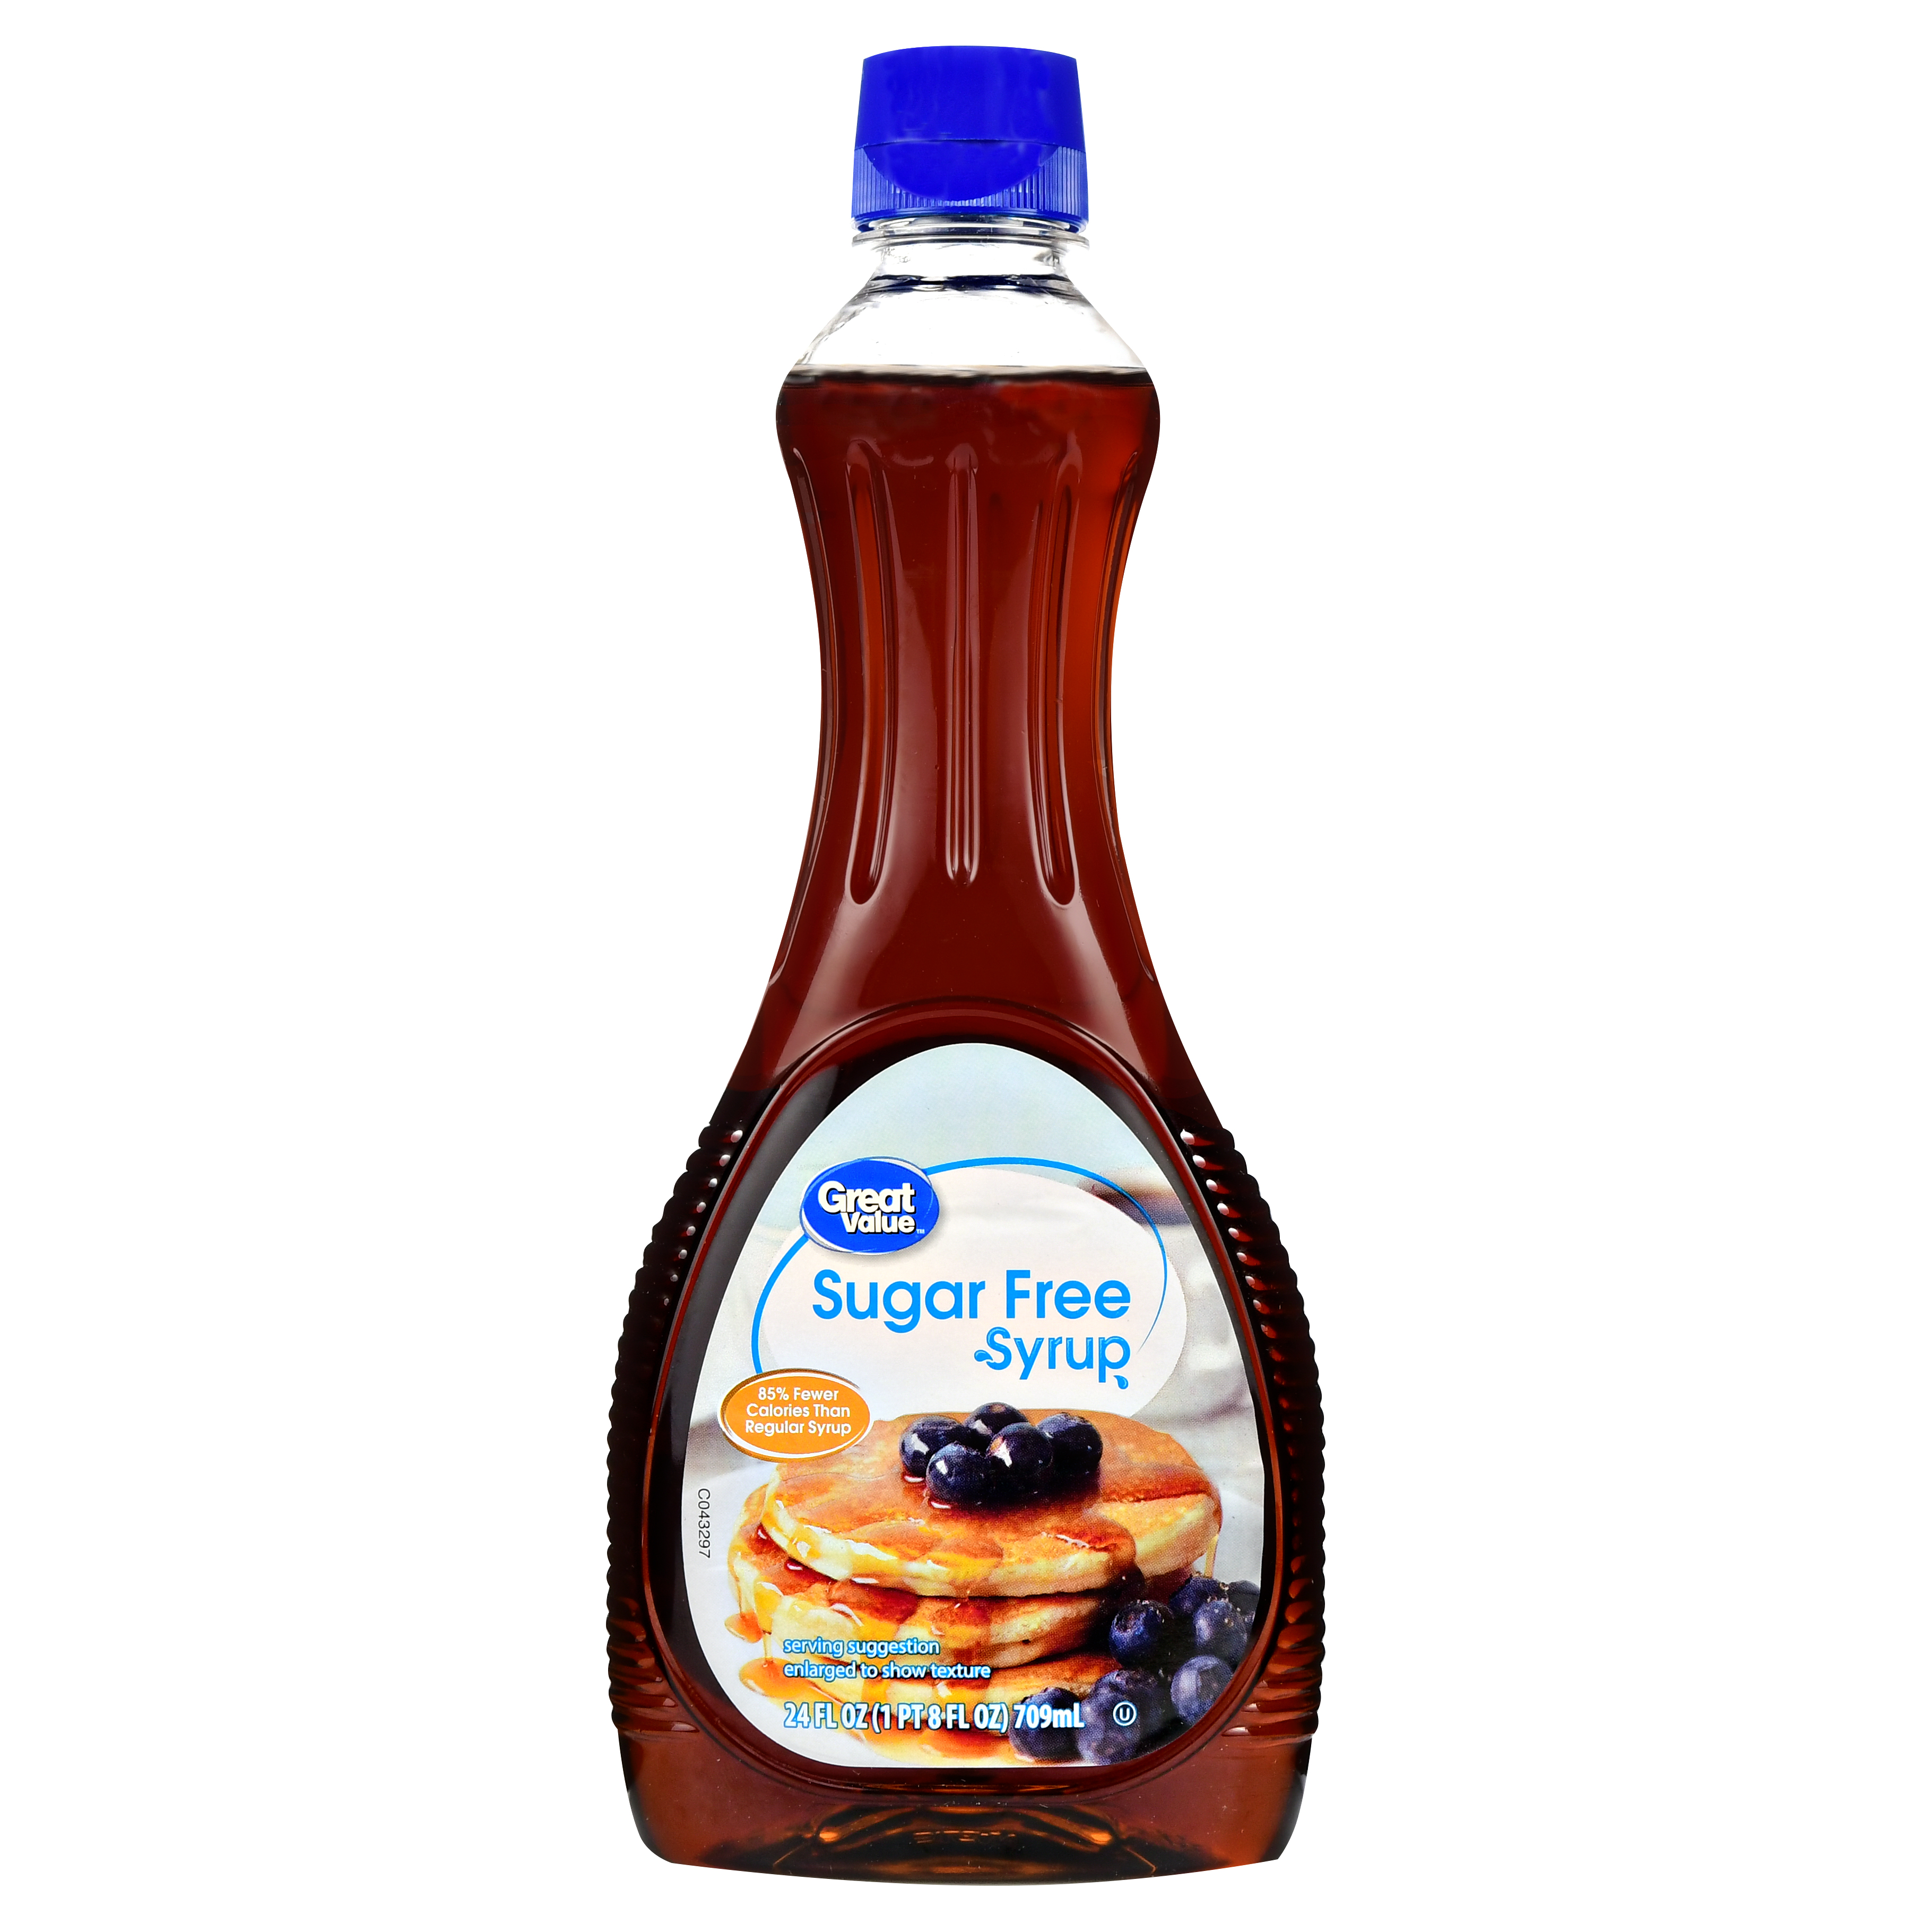 Syrup photo